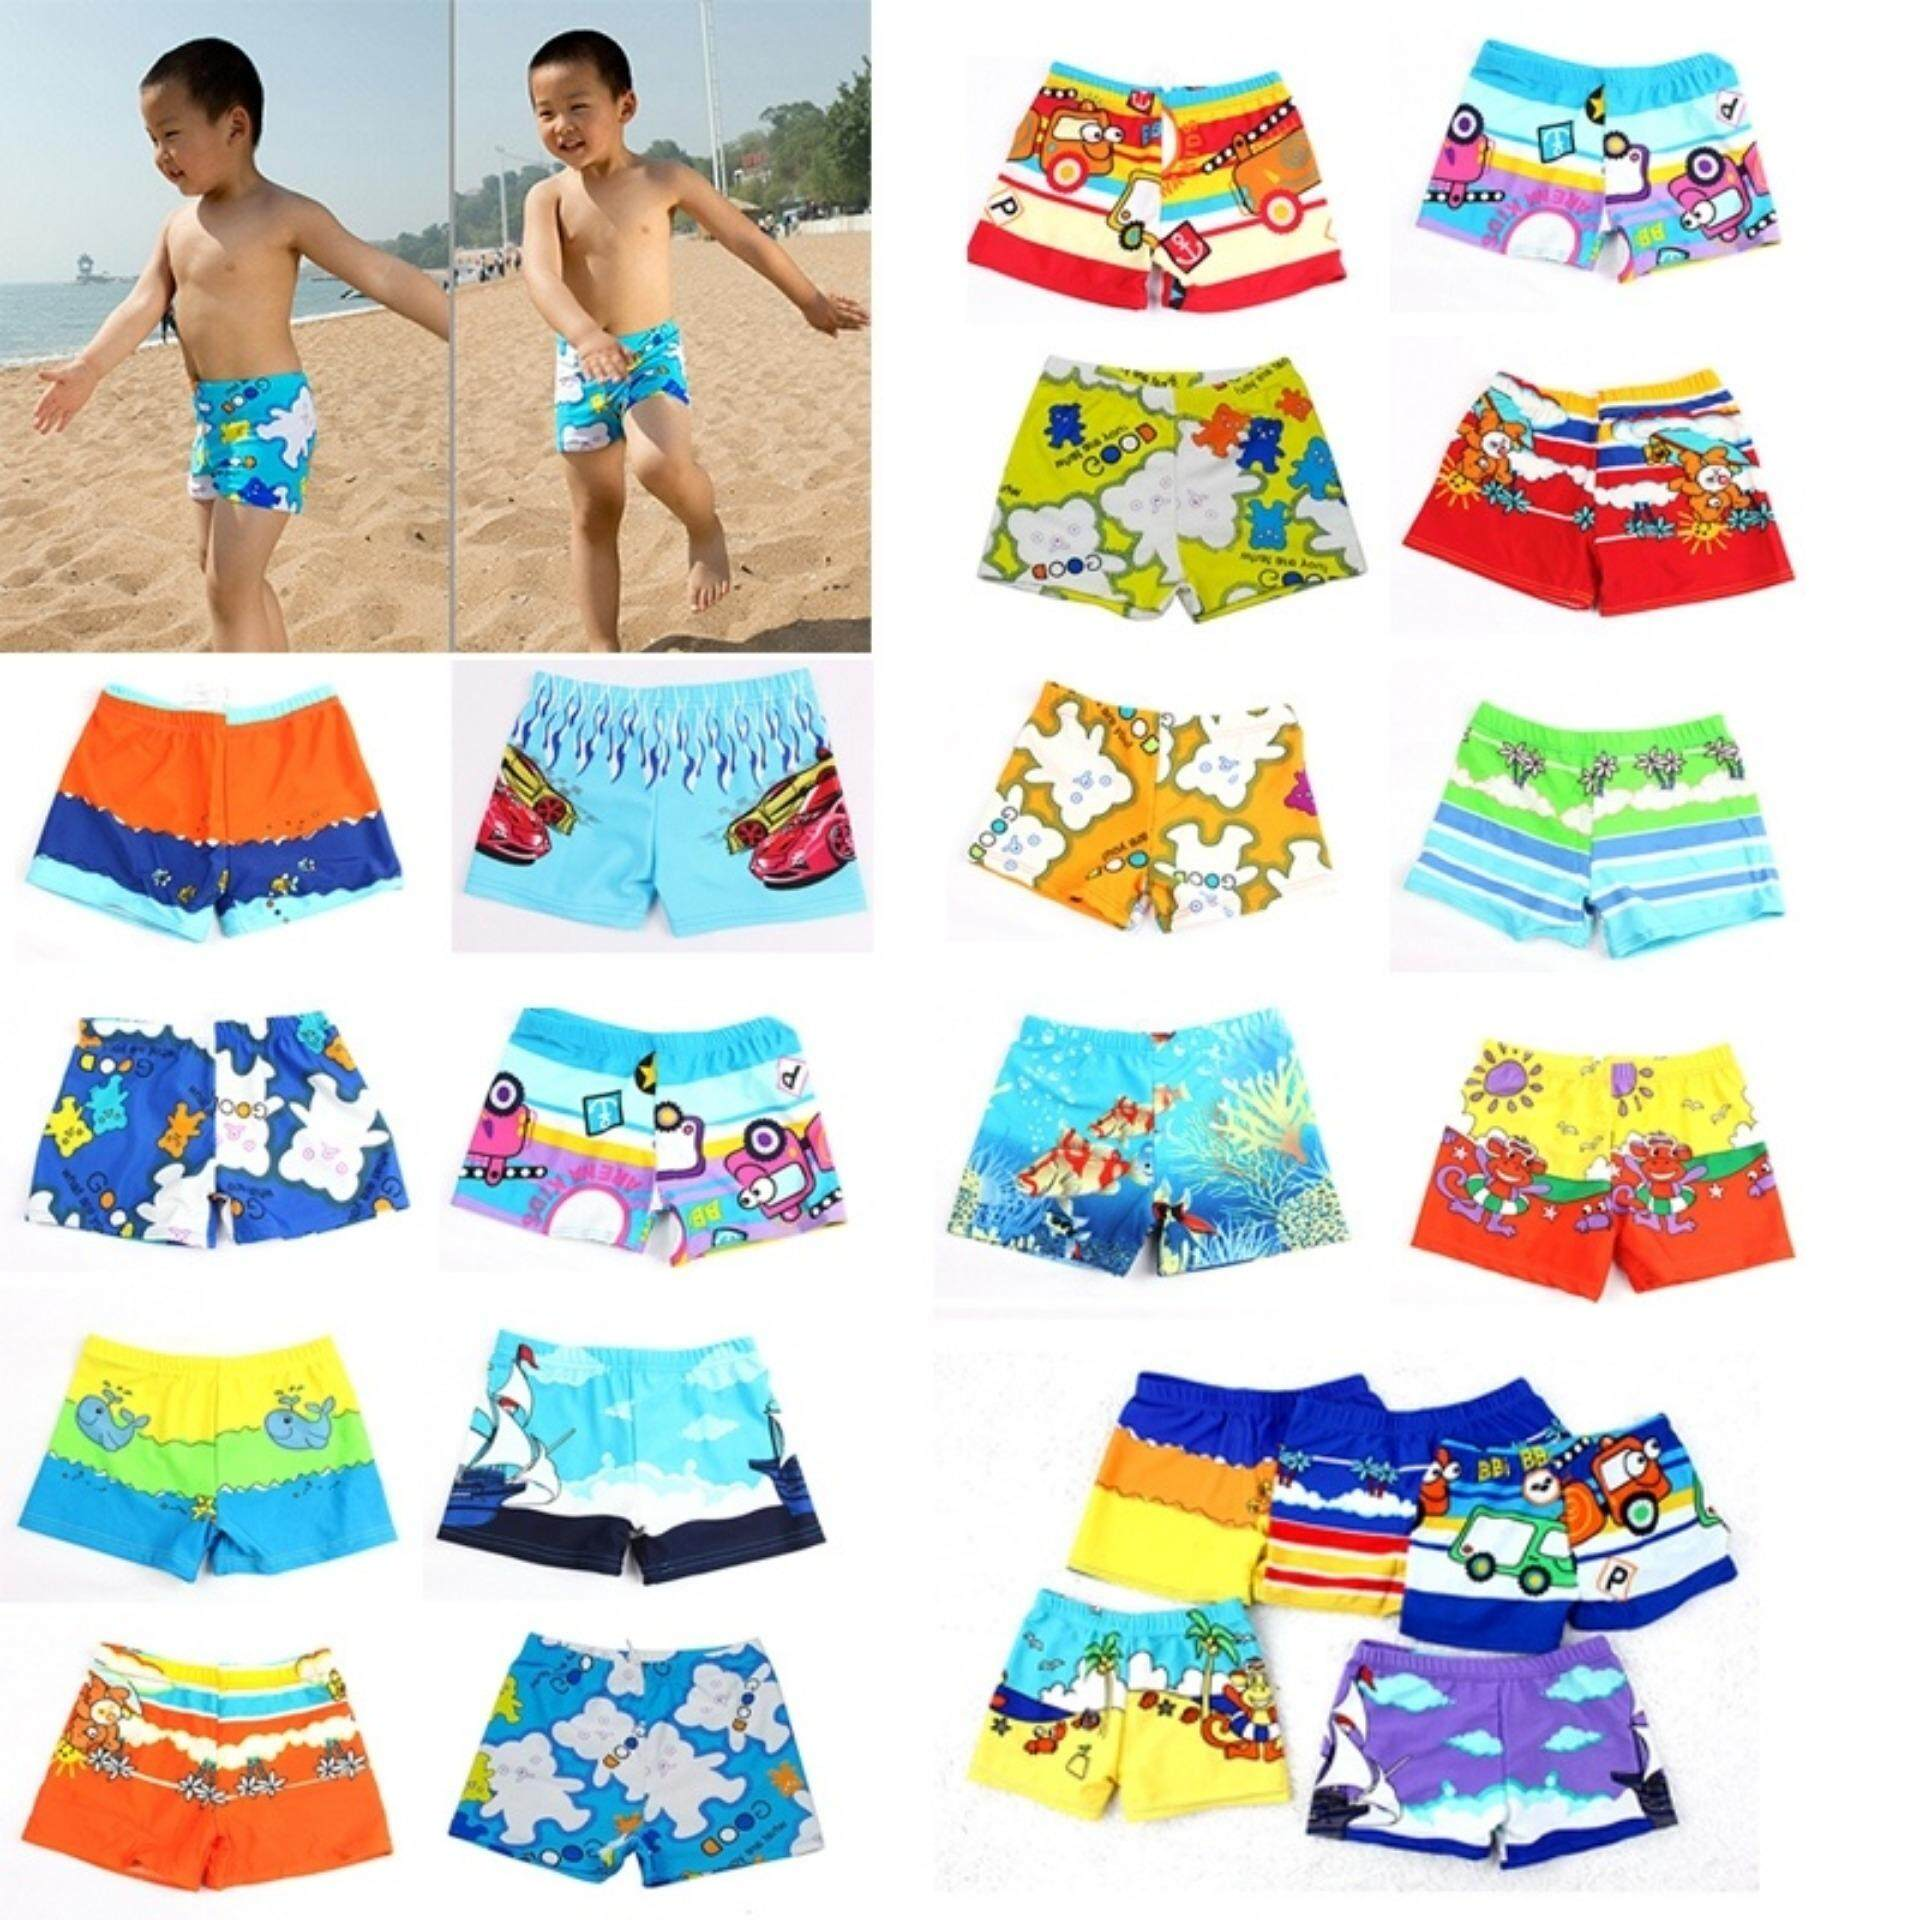 b103290377 Baby Boy Swimwear Cartoon Pattern Surfing Swim Trunks For Kids Colors  Random Medium